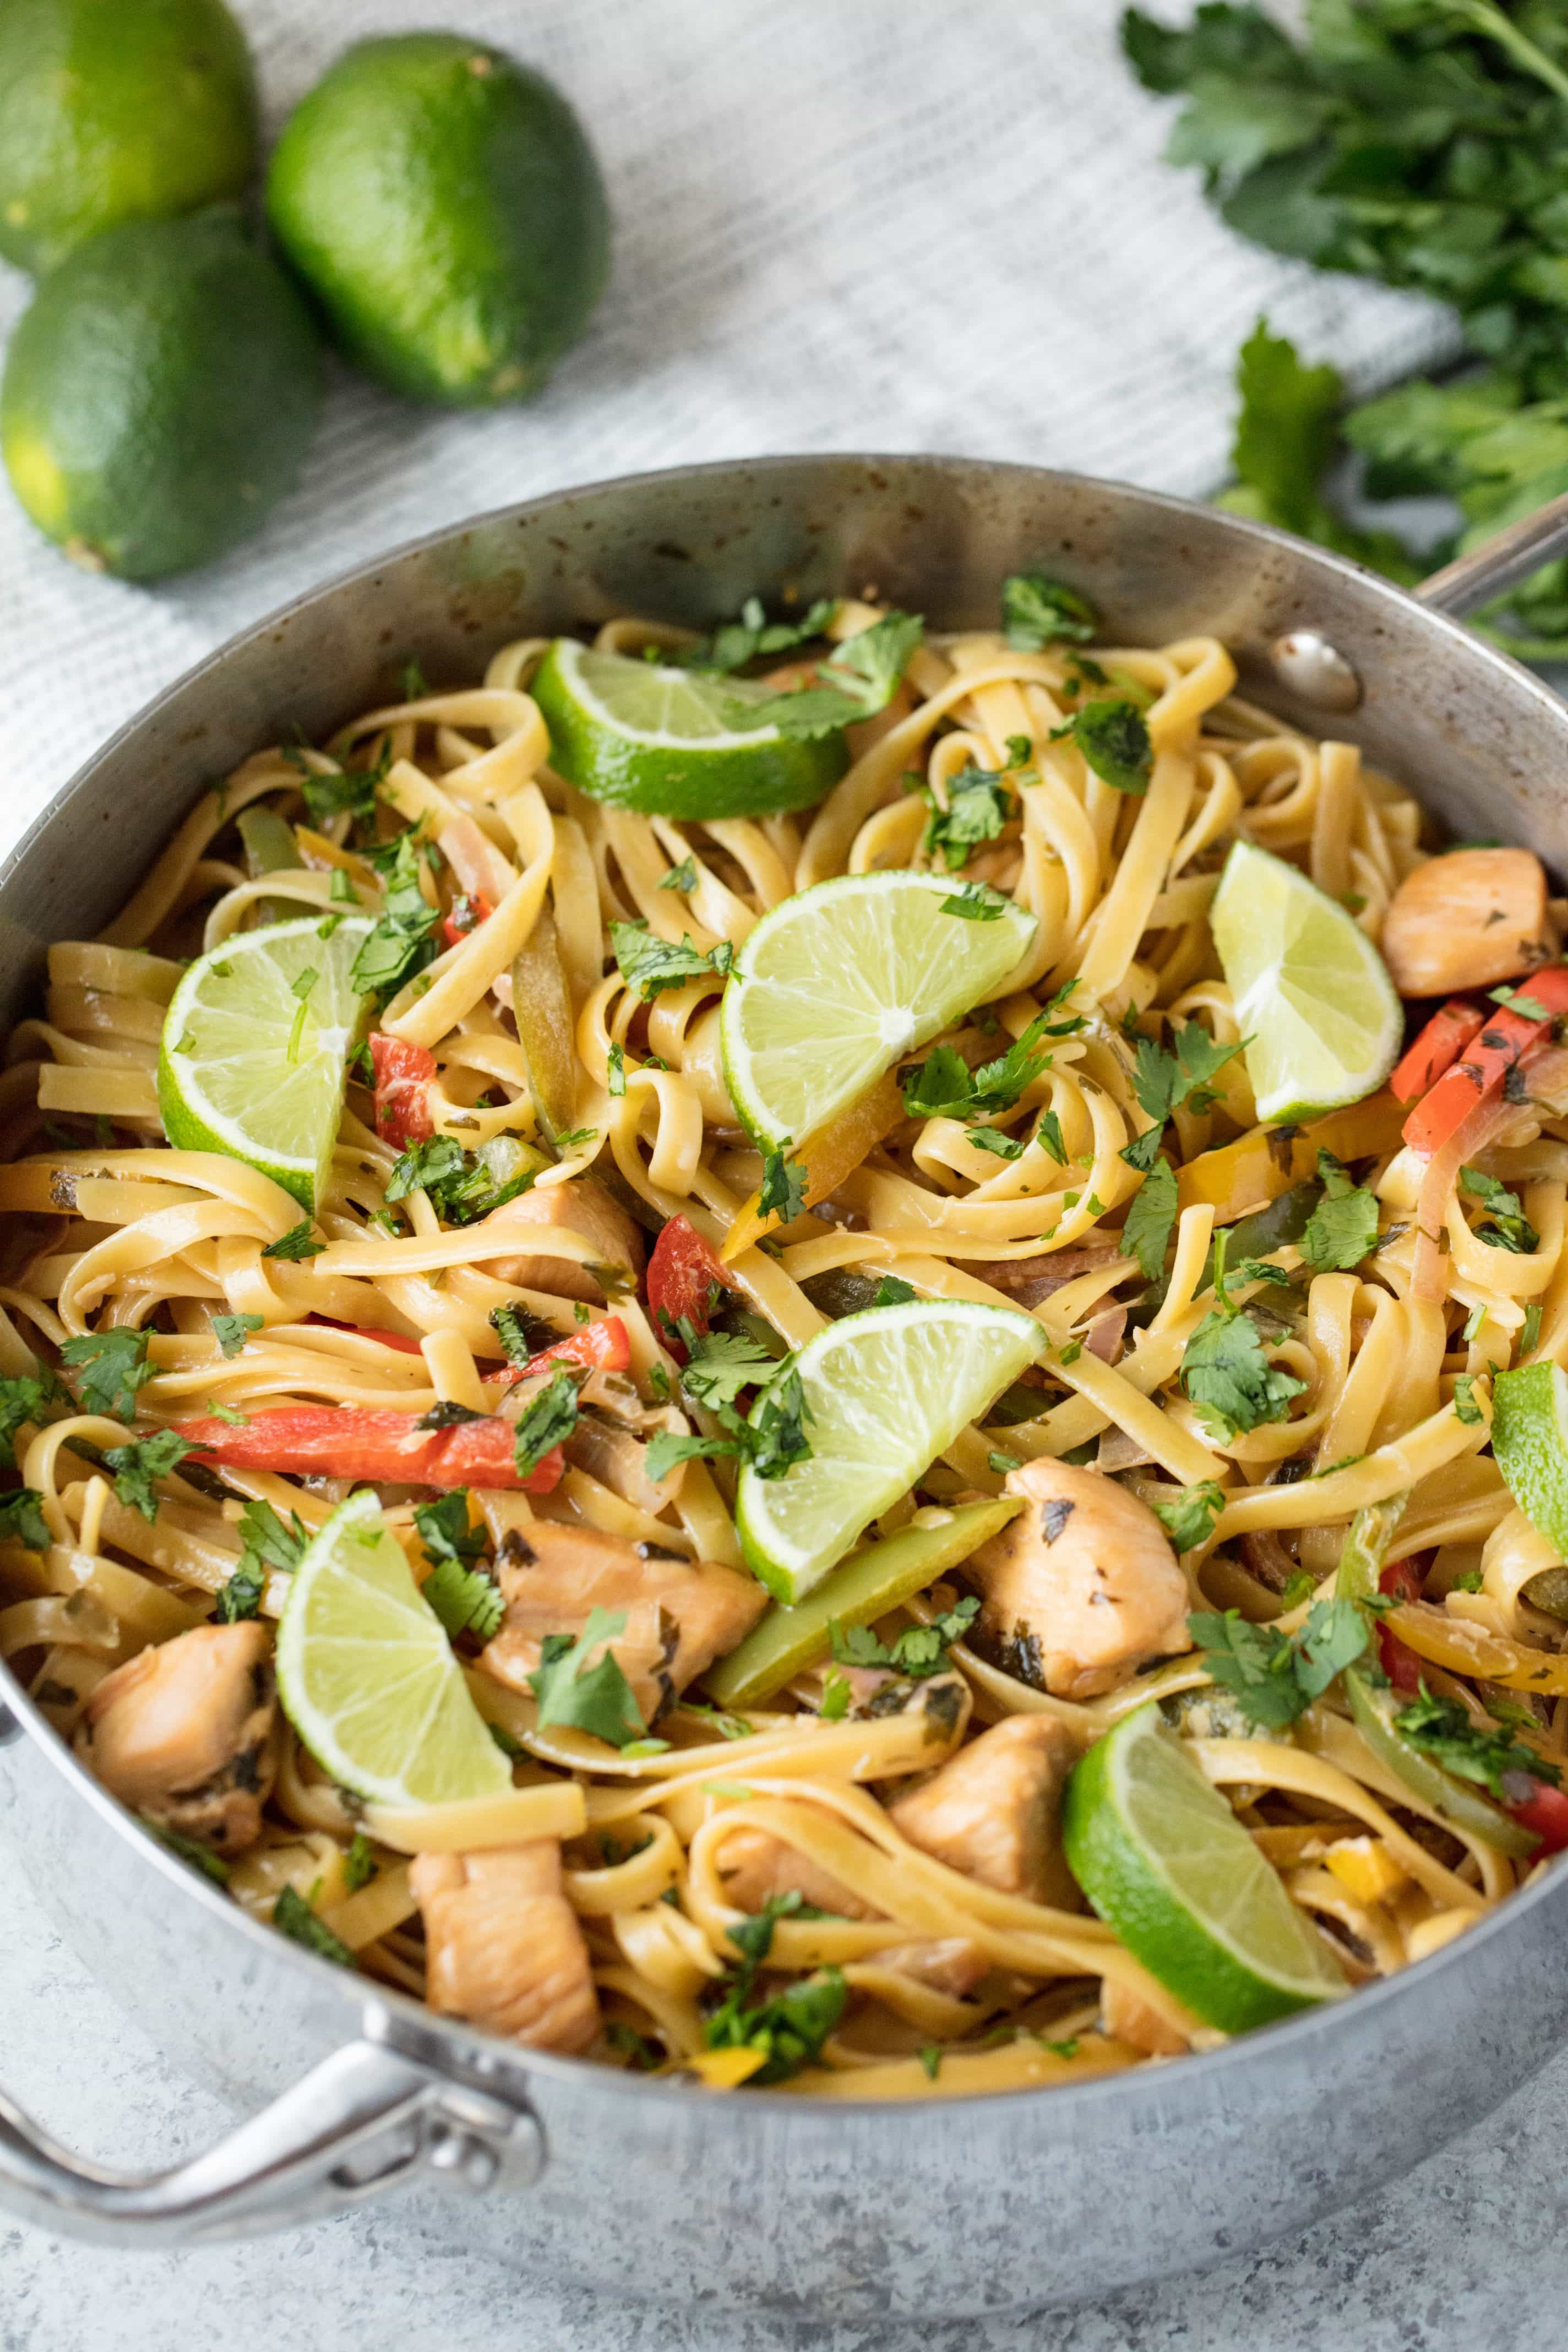 Tequila Lime Chicken Pasta is fun, vibrant, and full of flavor. This easy weeknight dinner is a complete meal with meat, veggies, and pasta all in one amazing dish. And the tequila burns off so it's family friendly too!